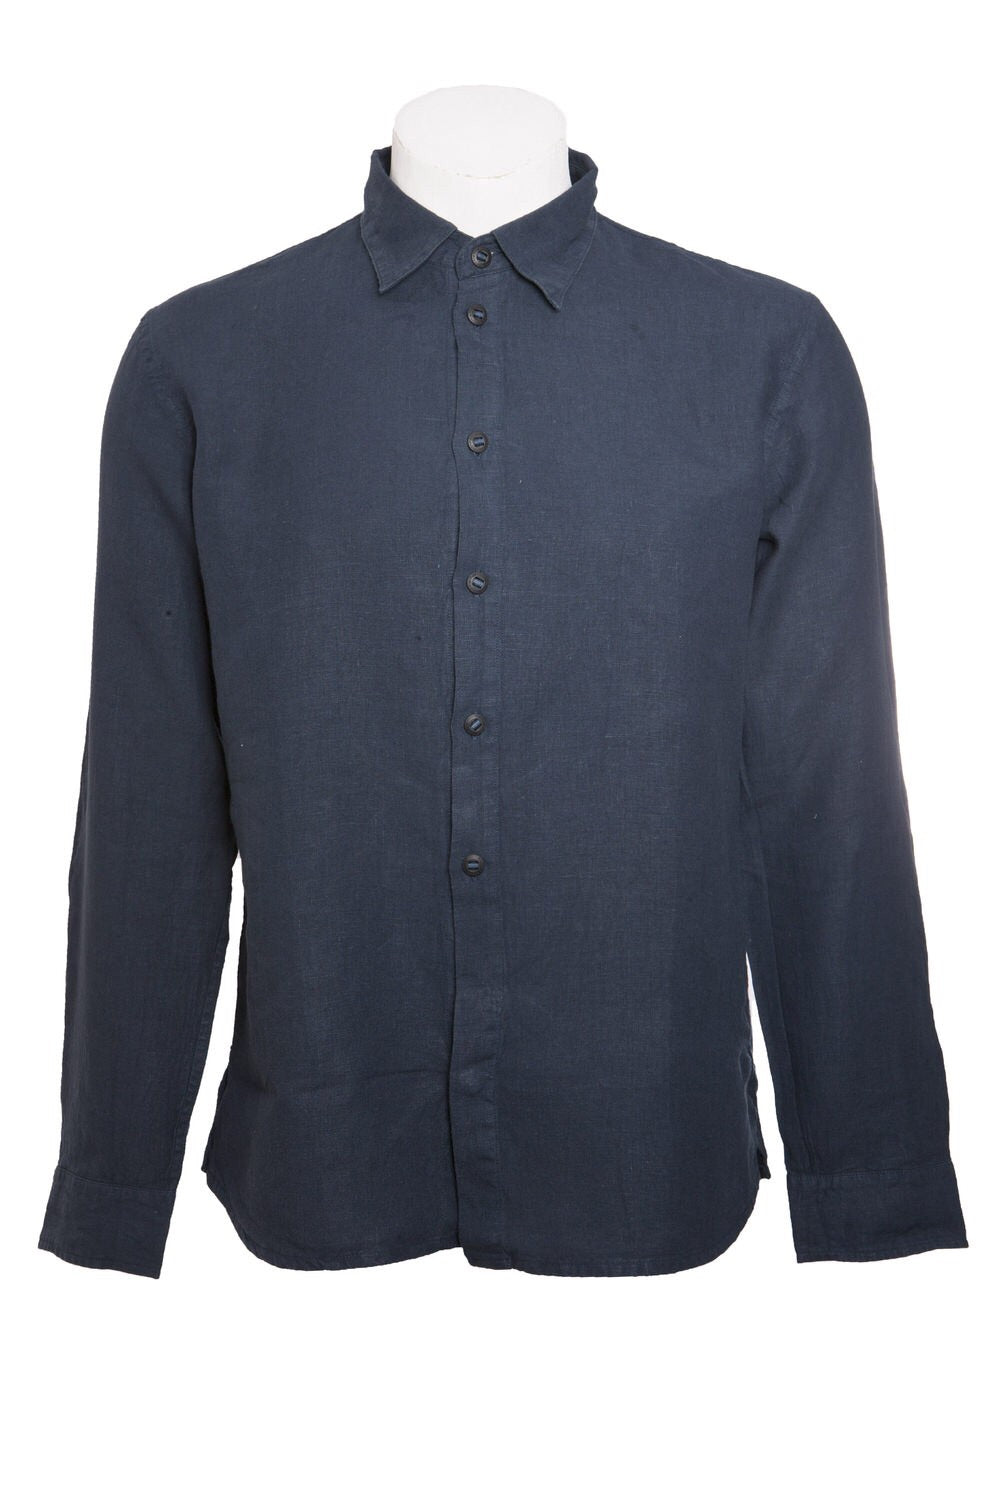 Hannes Roether Blue Linen Shirt